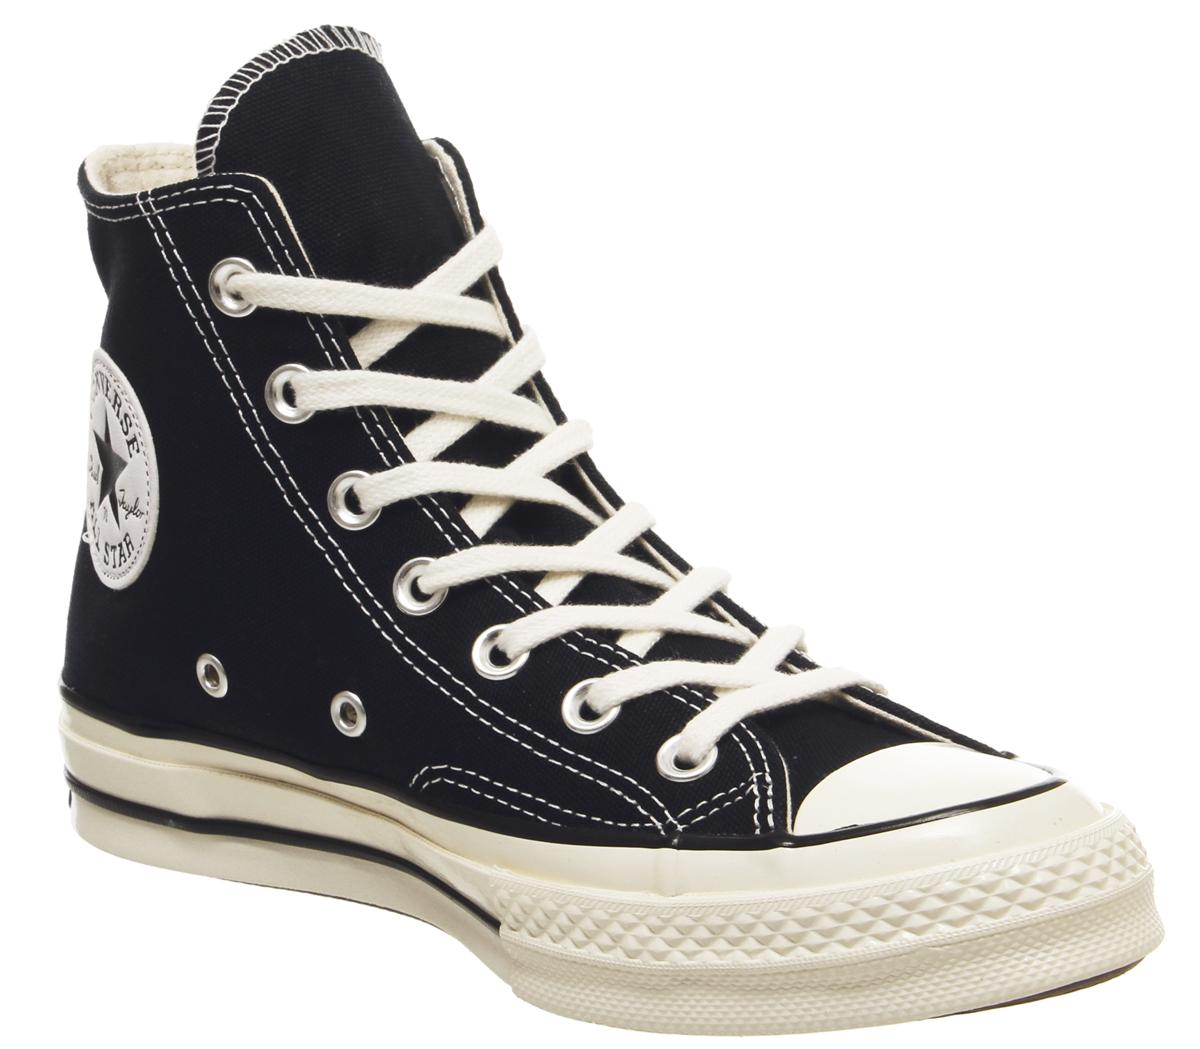 converse all star 70s